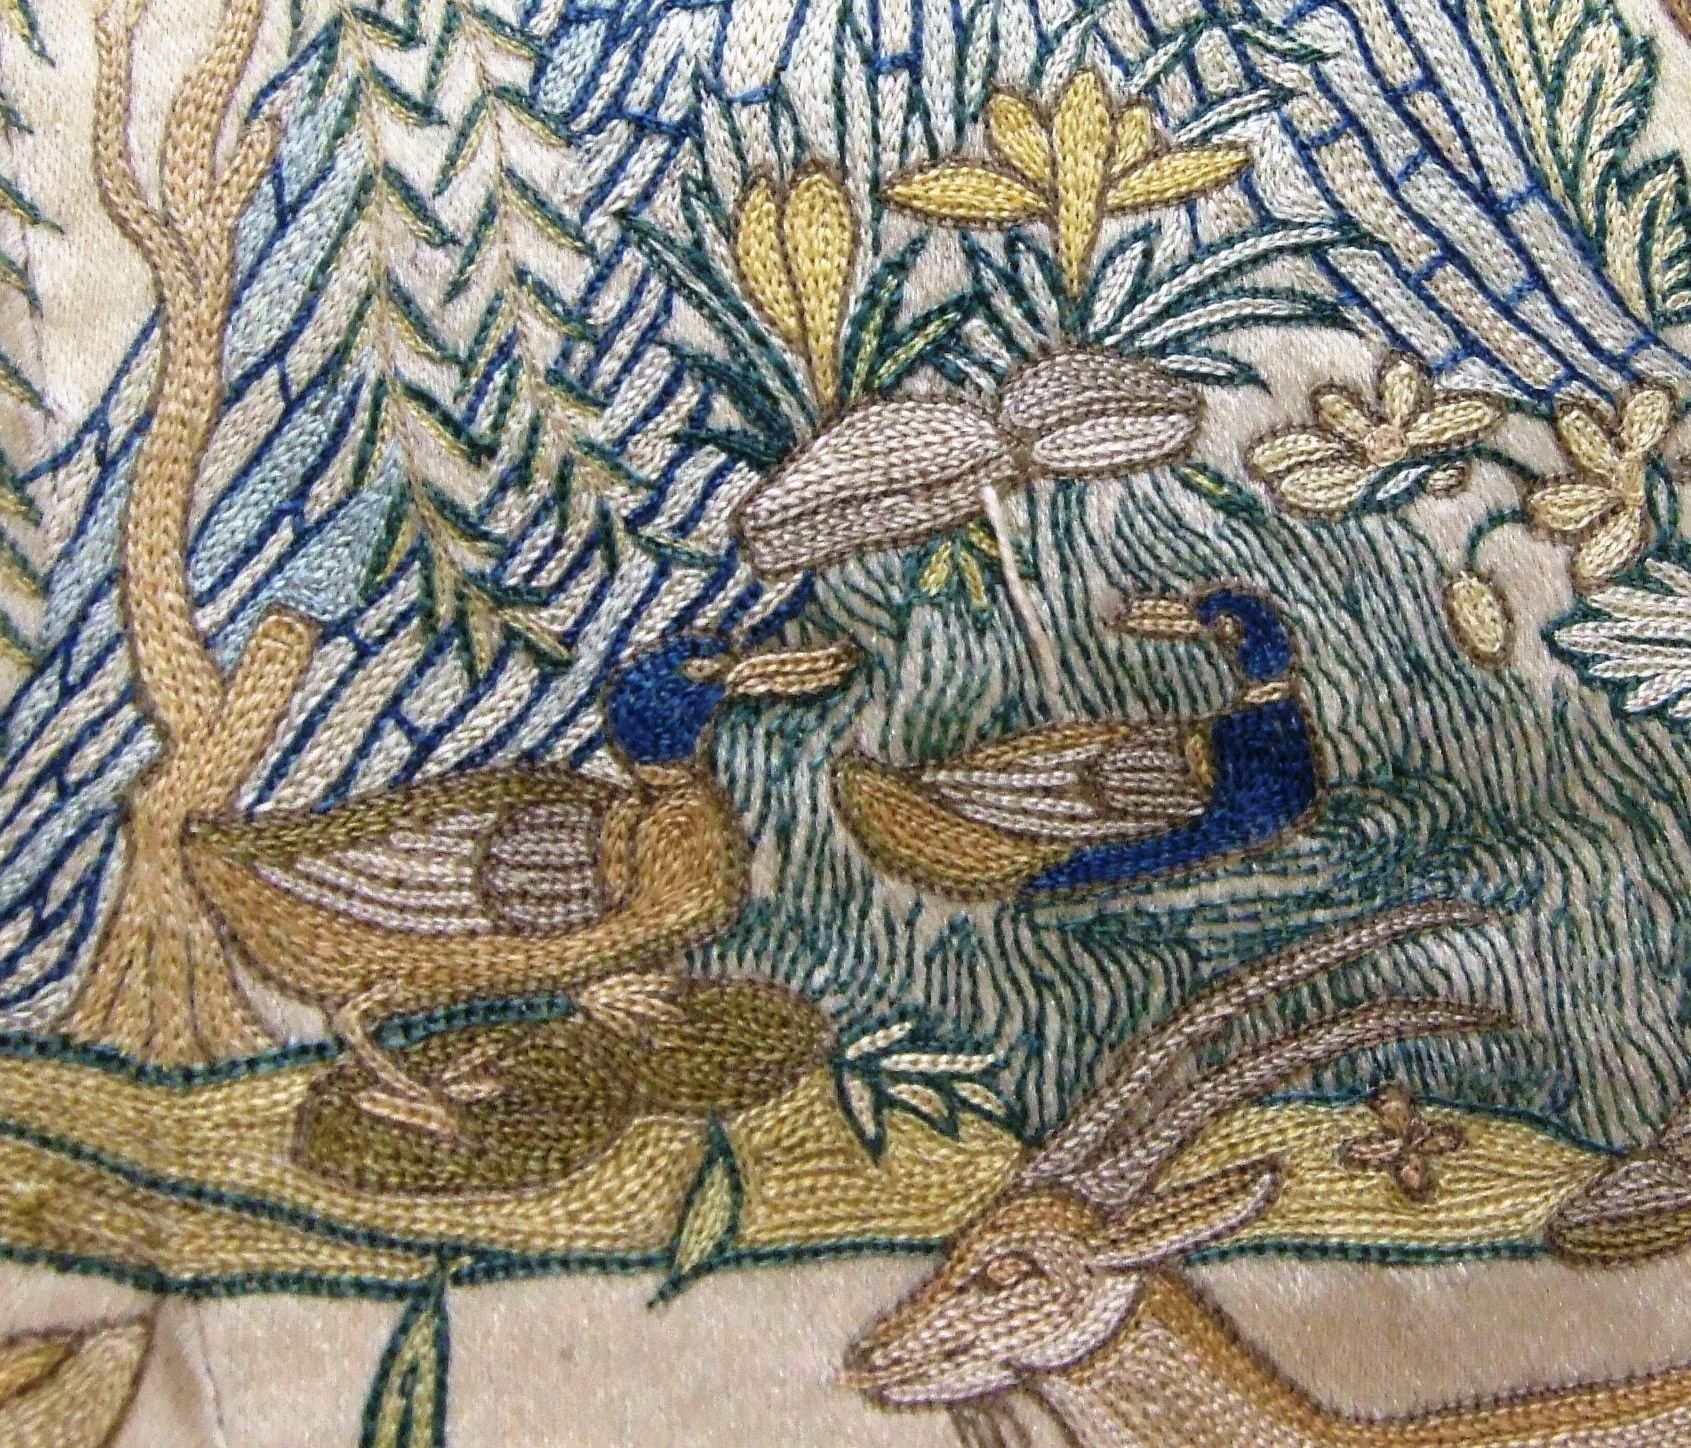 Ducklings in the digital age and indian textiles